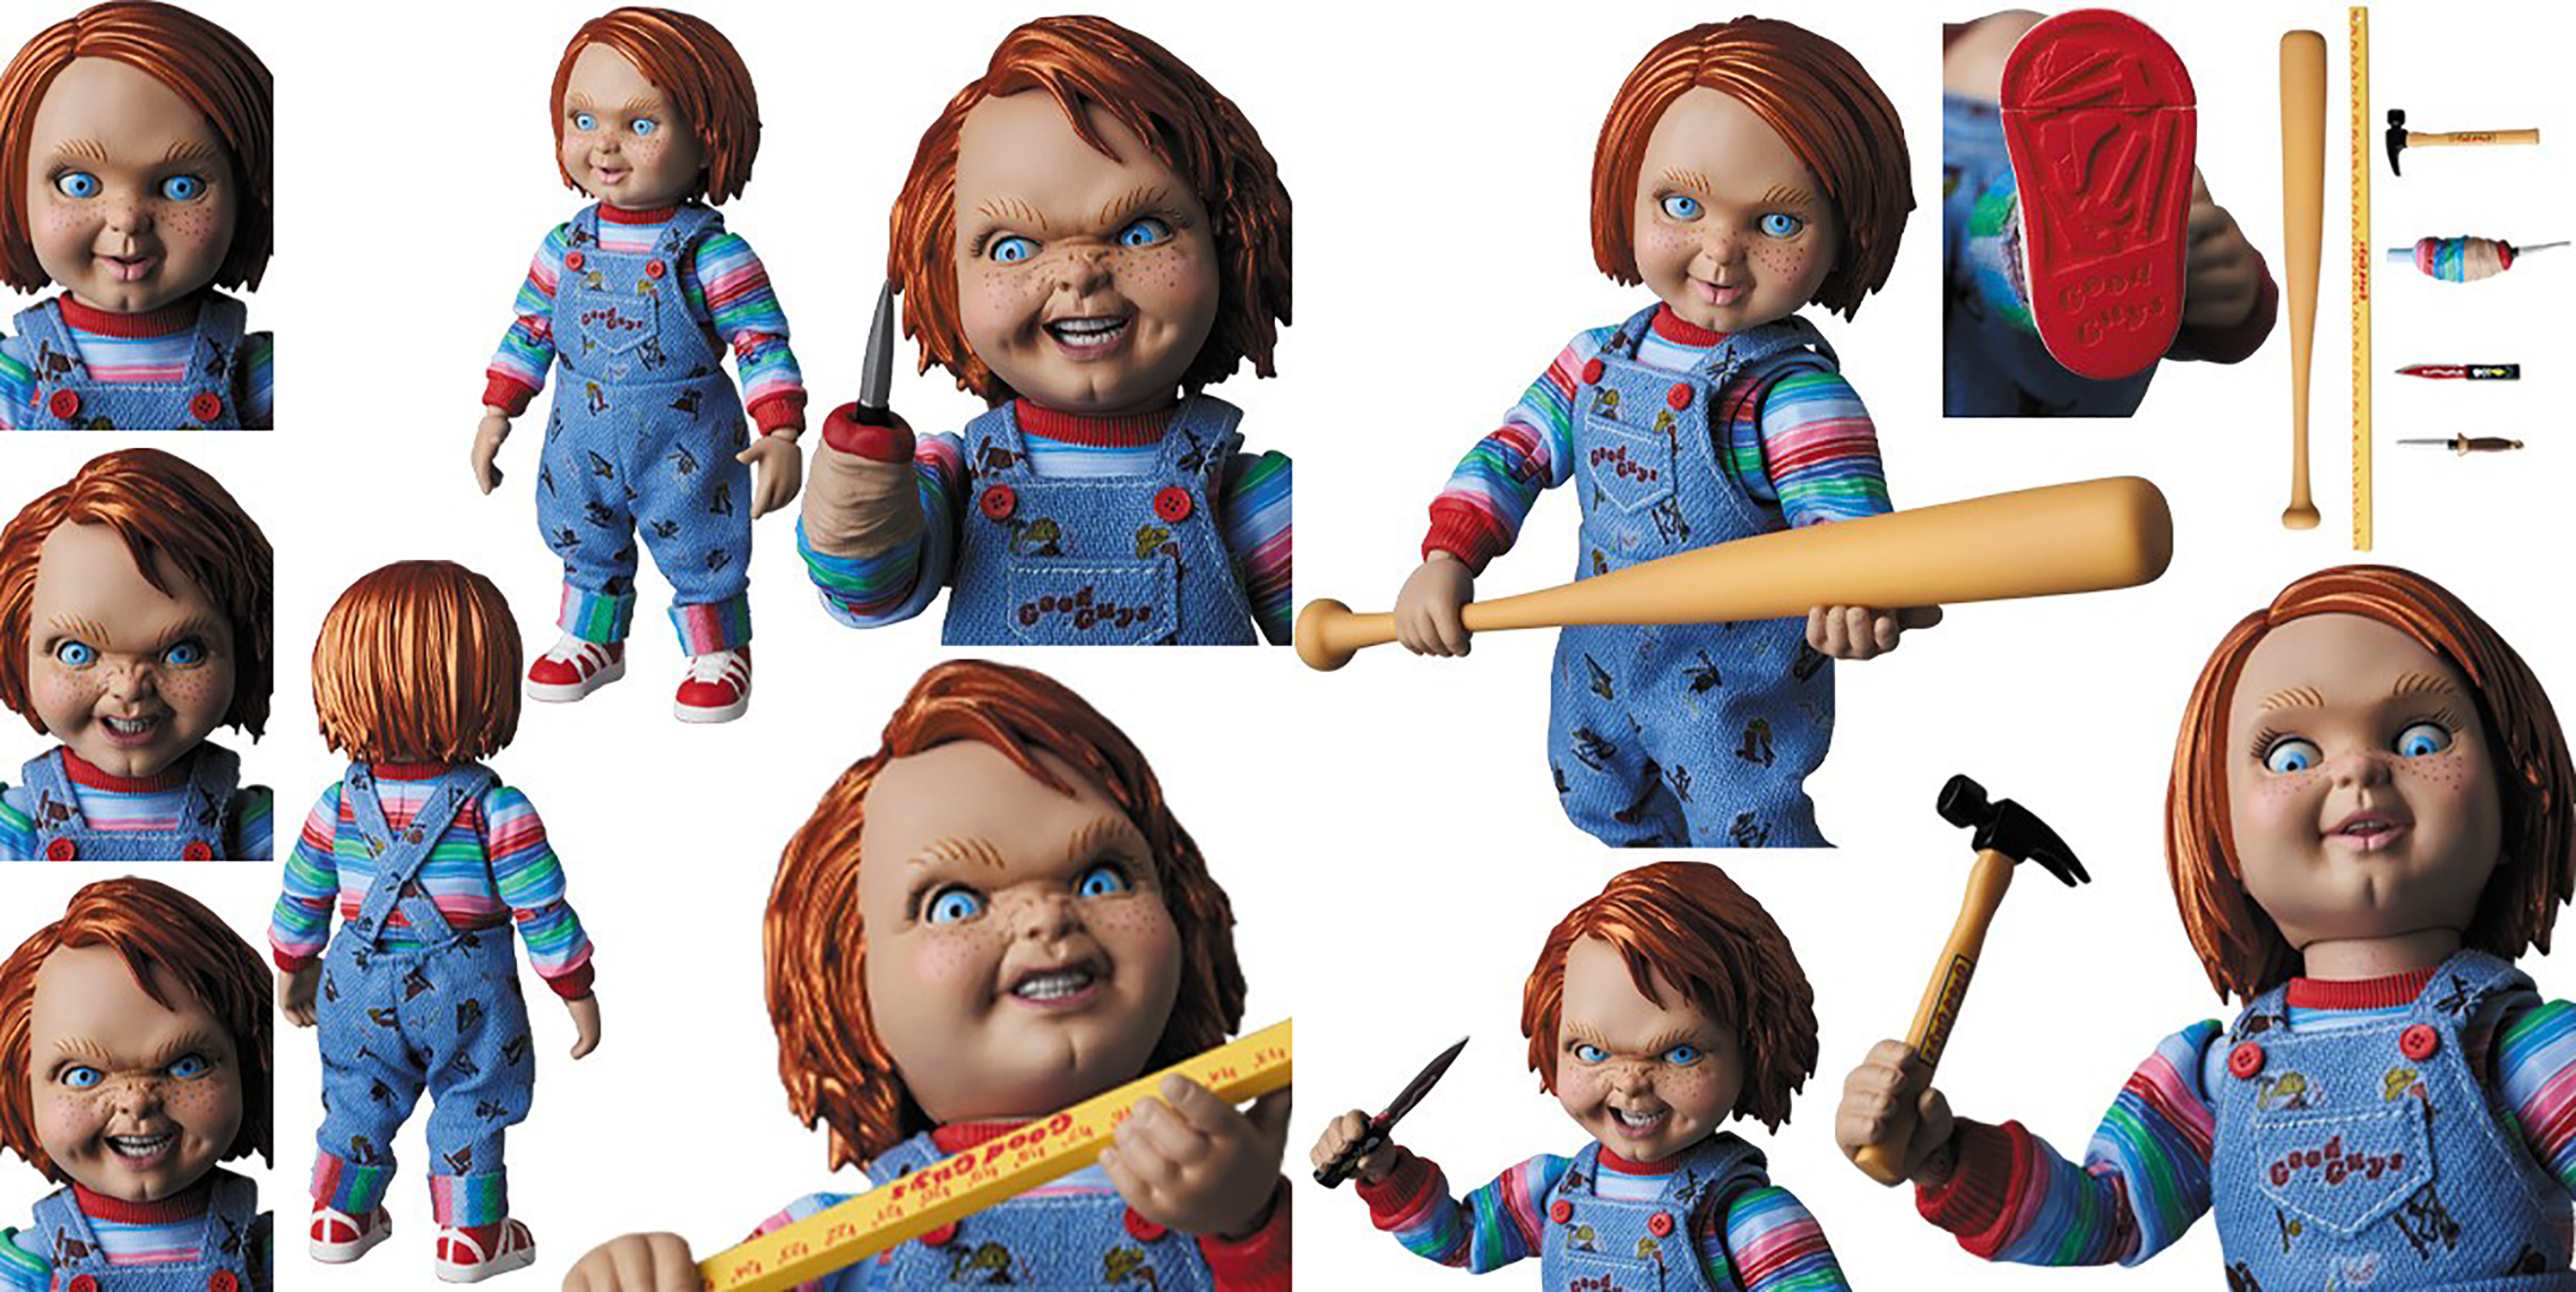 CHILDS PLAY 2 GOOD GUY DOLL MAFEX AF